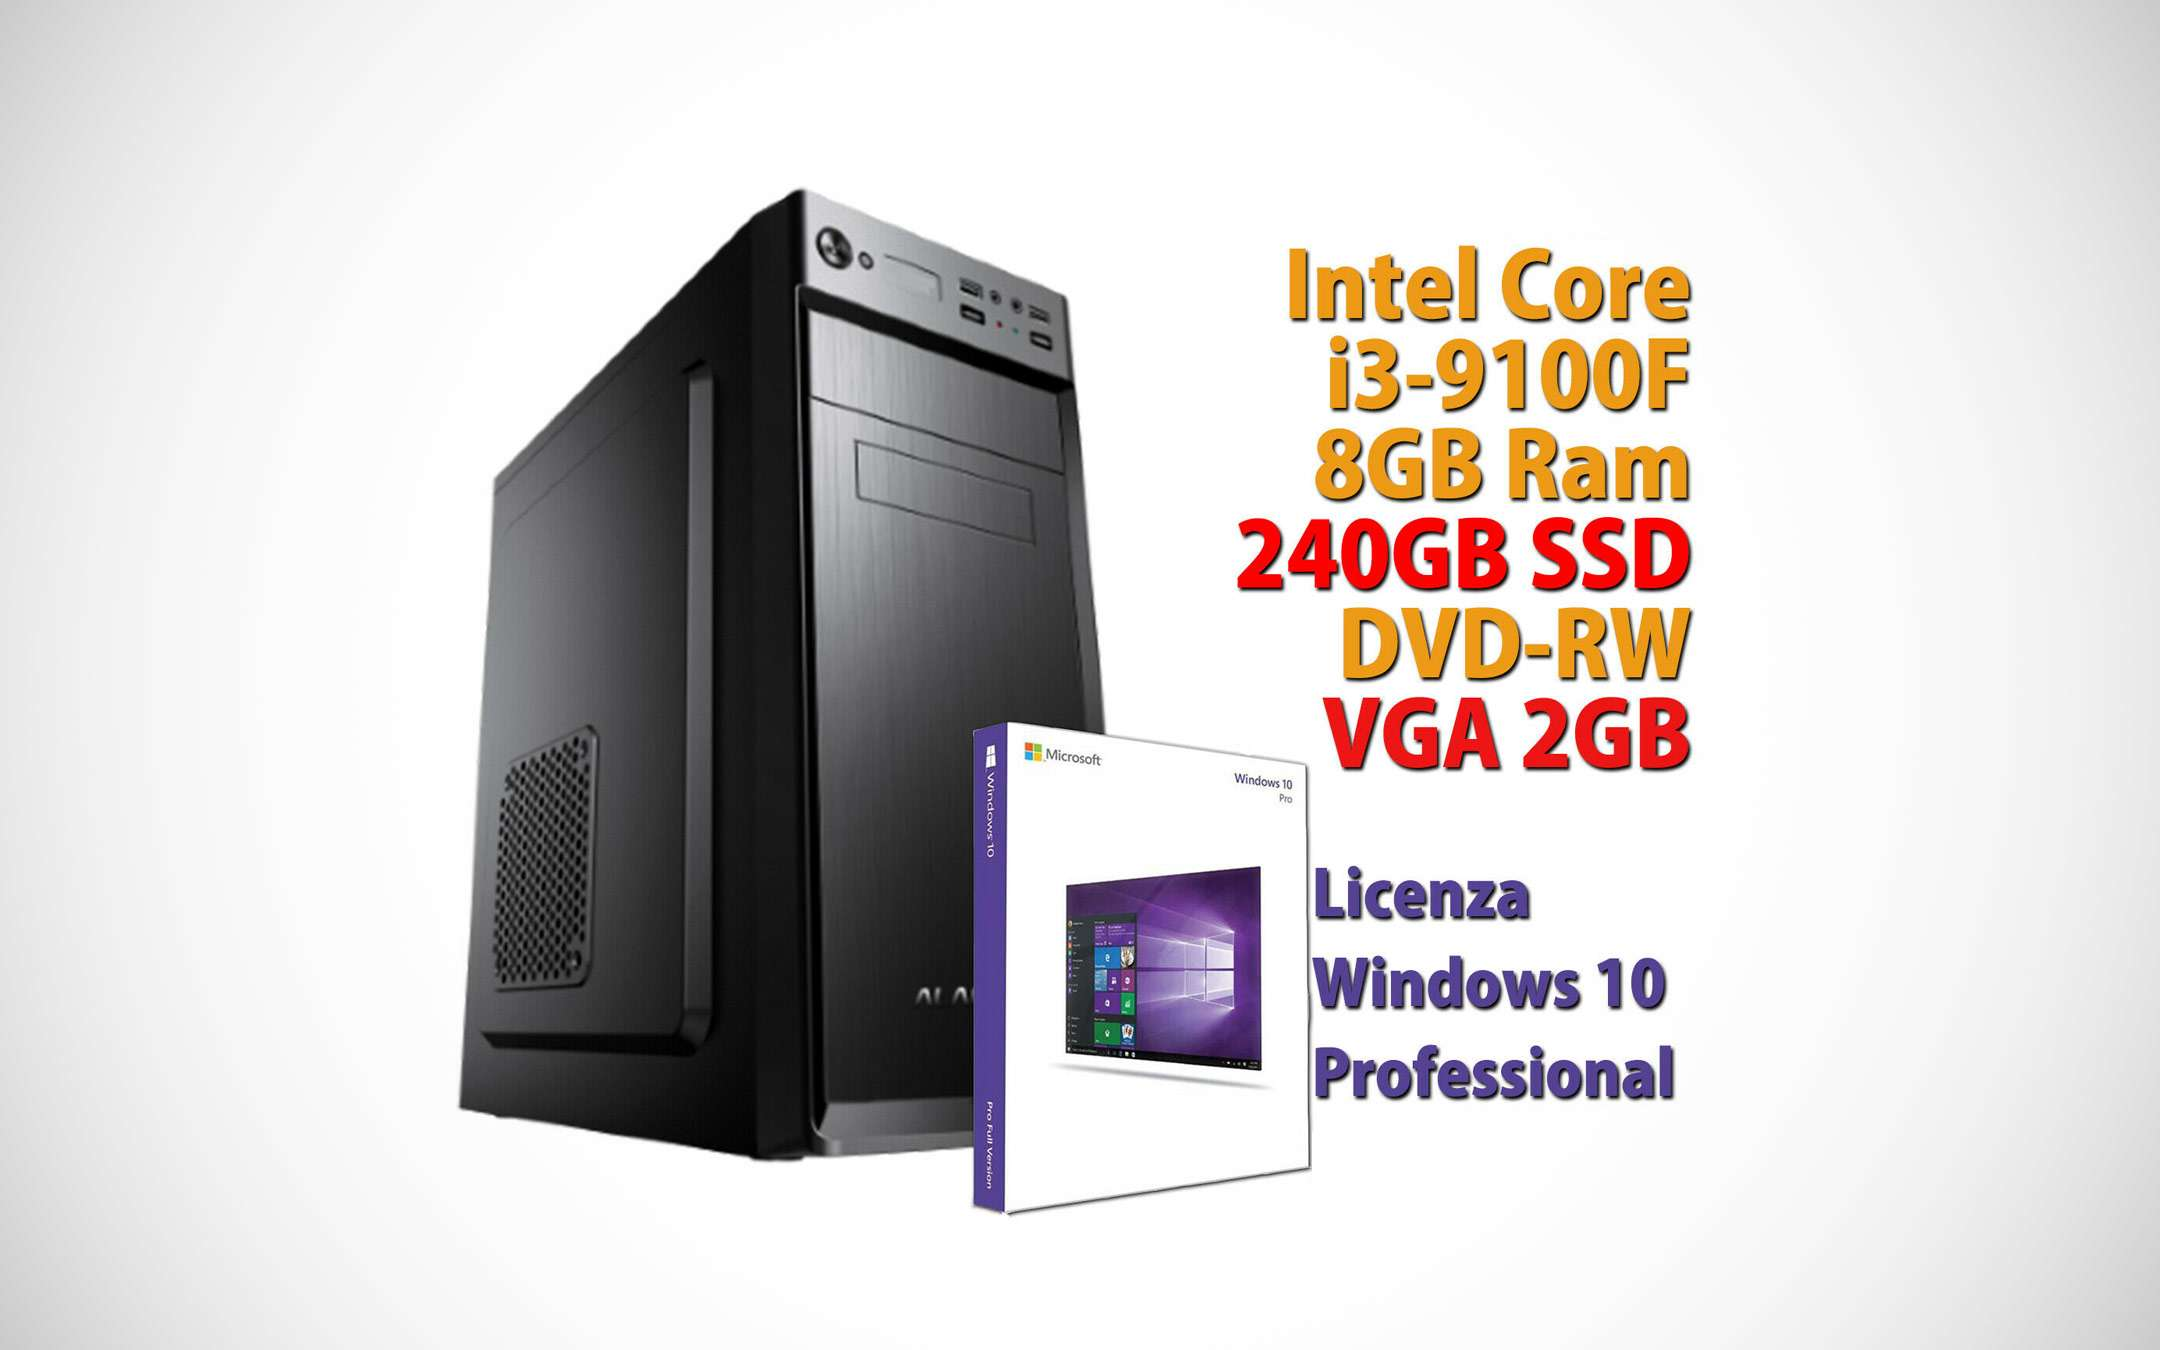 A complete desktop PC for just € 315.90